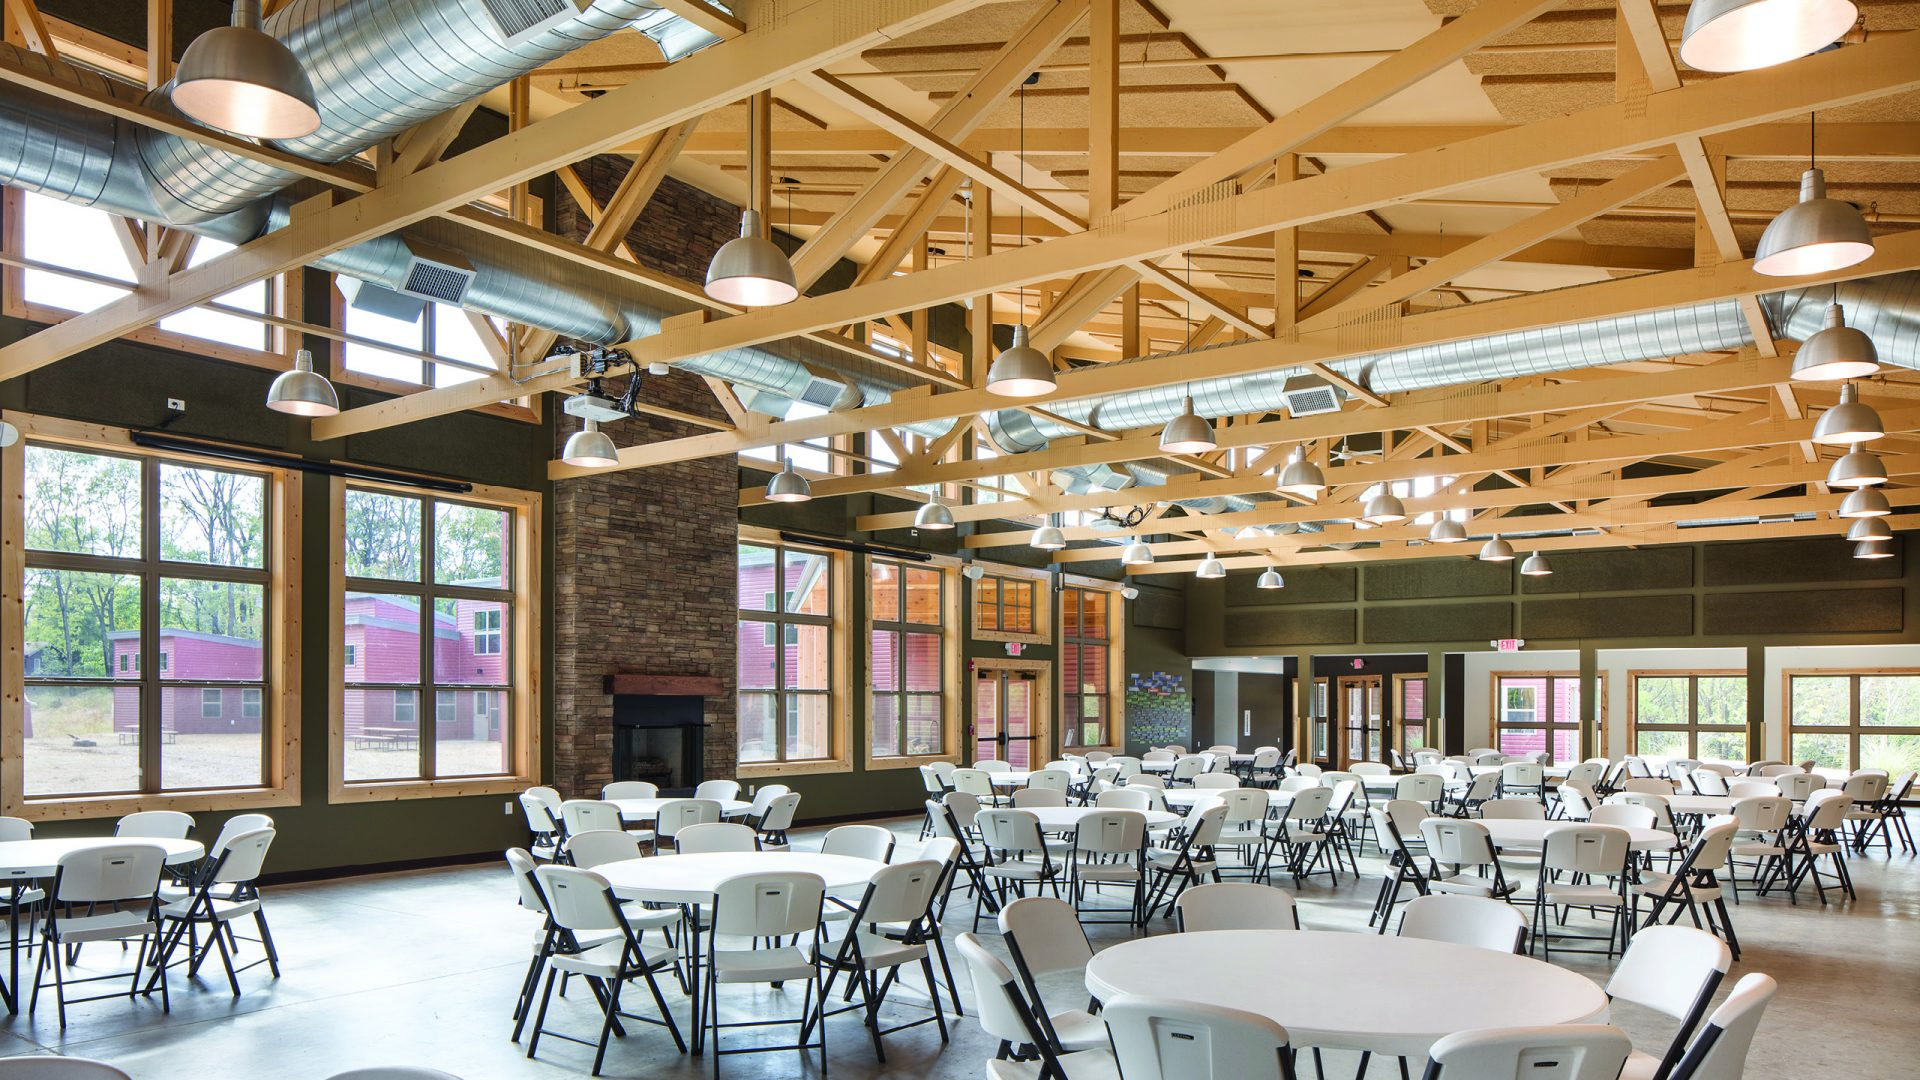 dining hall with round folding tables and chairs at the Girl Scouts of Eastern Iowa and Western Illinois Camp Liberty Lodge